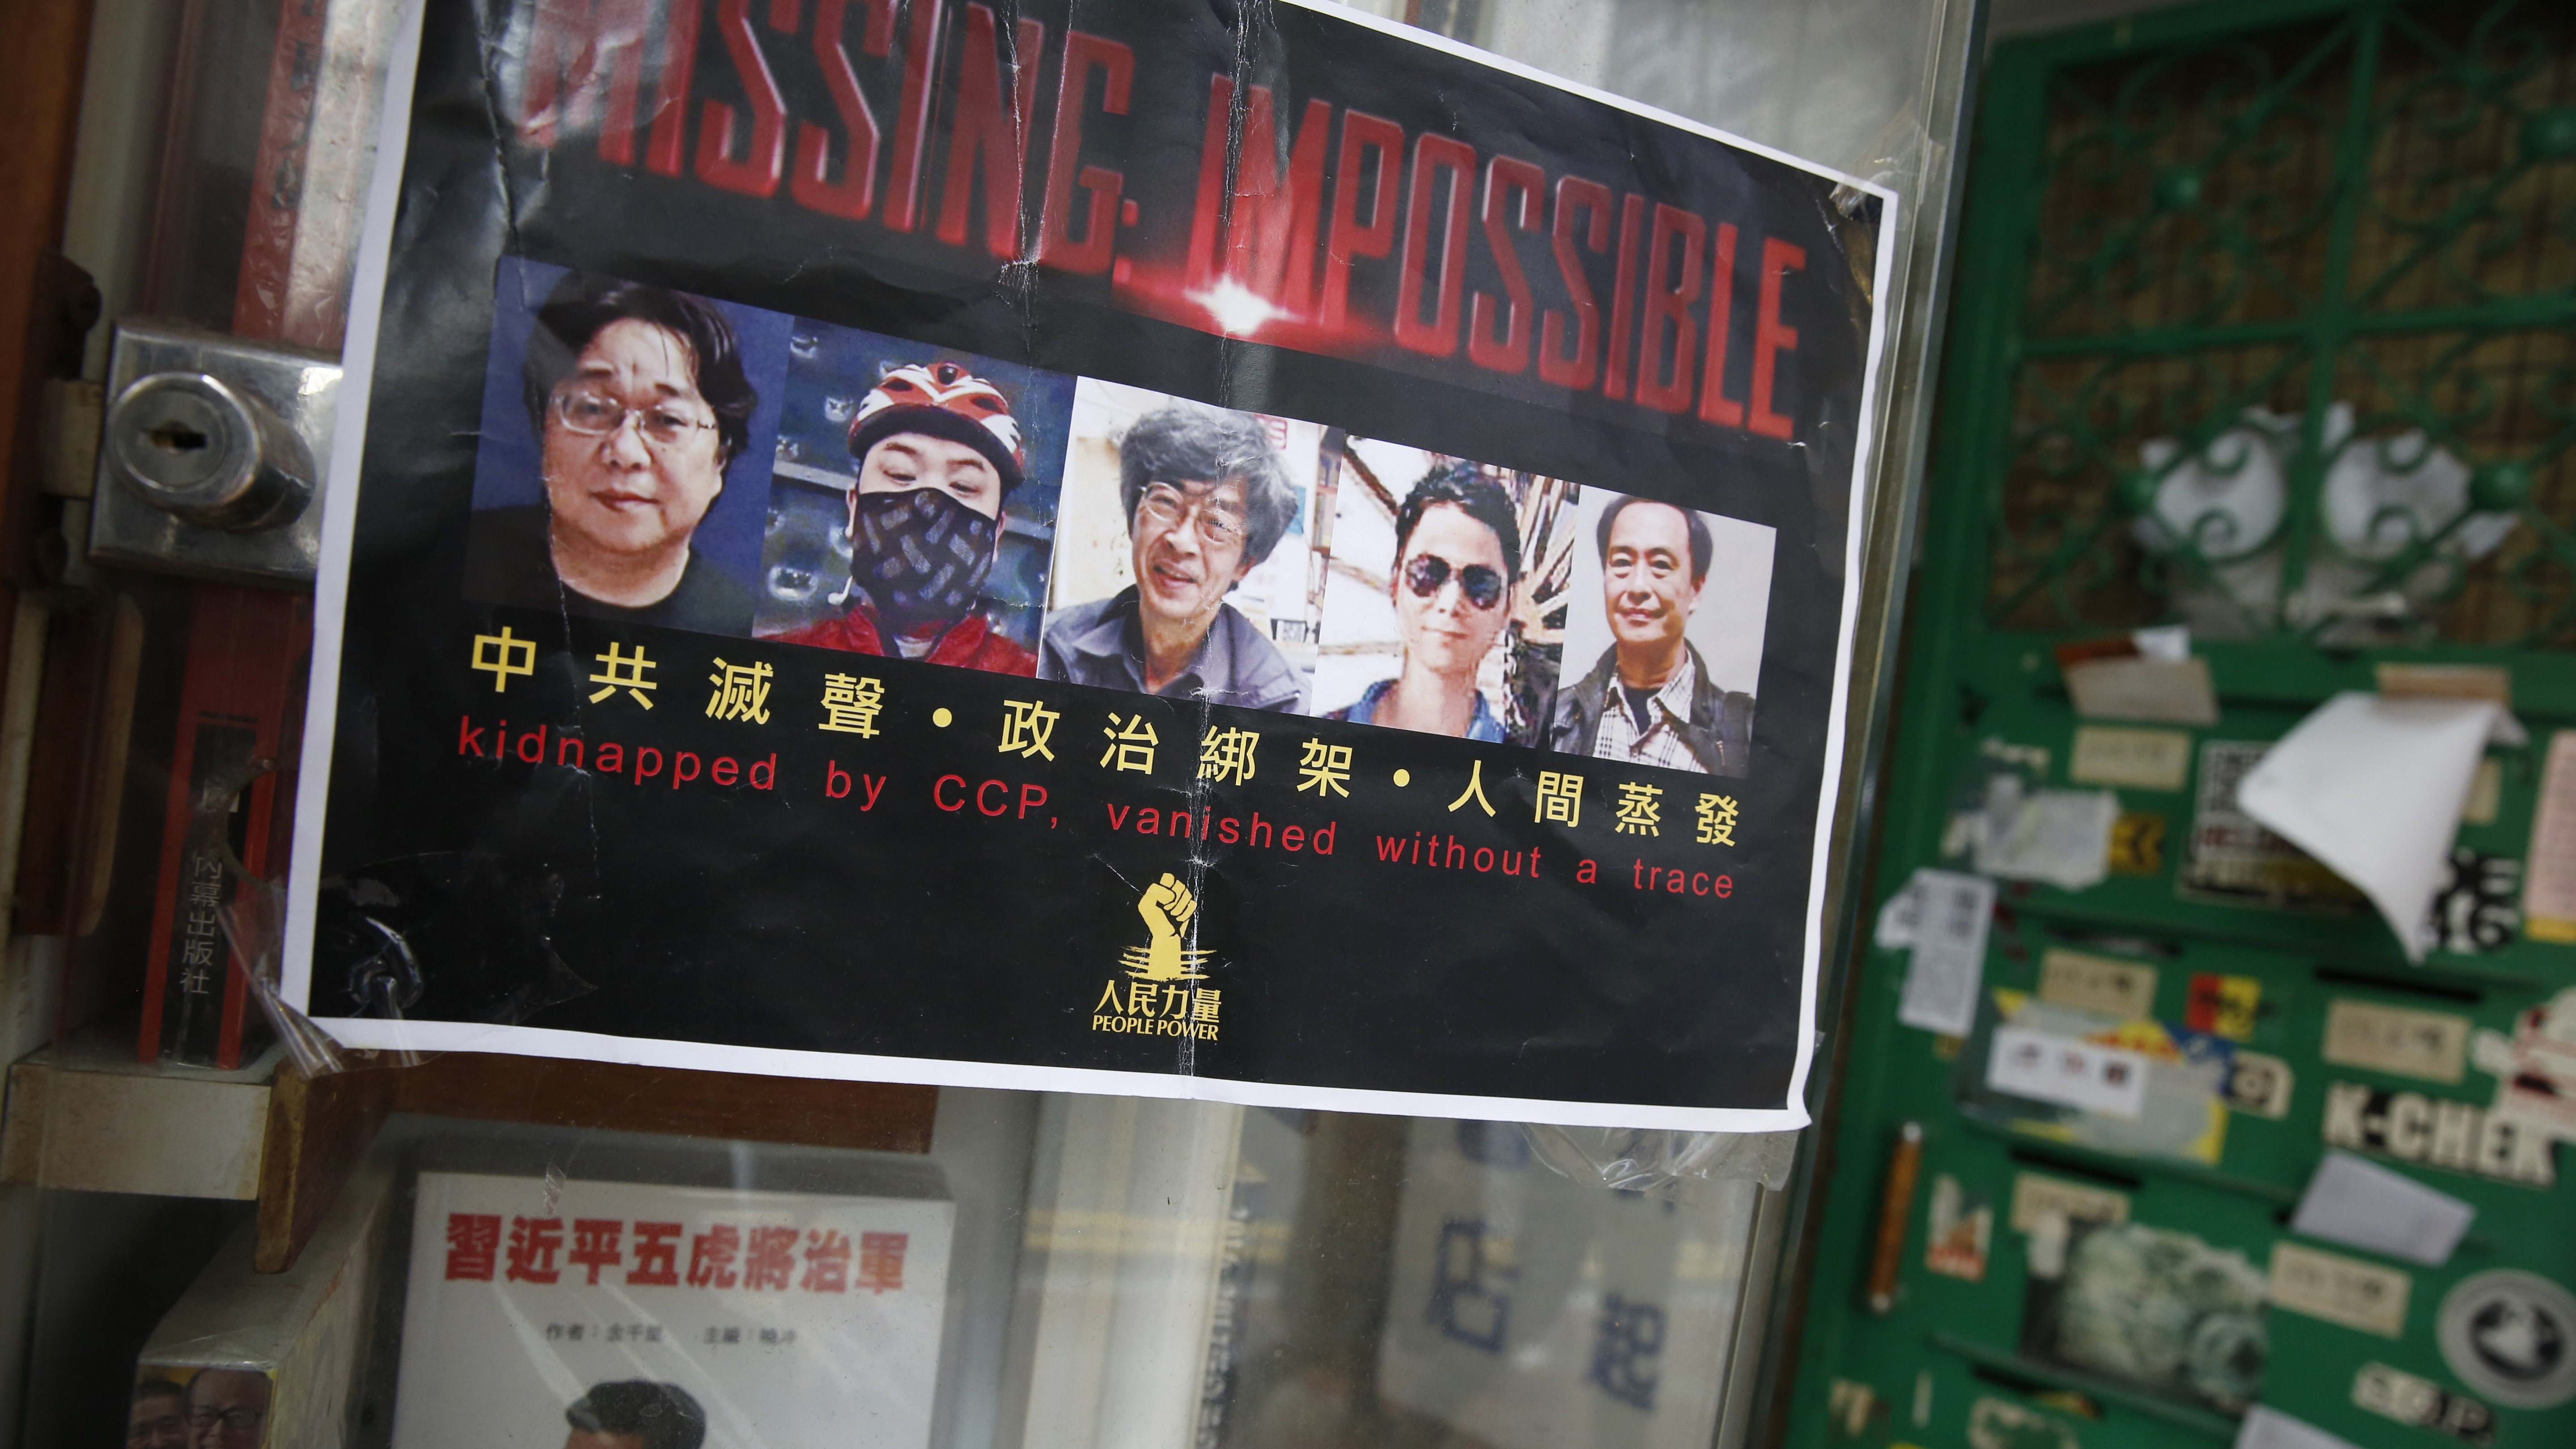 A poster featuring five missing Hong Kong booksellers is displayed by their supporters at the entrance of the closed Causeway Bay Bookstore which is known for gossipy titles about Chinese political scandals and other sensitive issues that are popular with visiting tourists from the mainland, in Hong Kong, Friday, Feb. 5, 2016. Mainland Chinese authorities say they're investigating three missing Hong Kong booksellers for unspecified criminal activity, shedding more light on a case that's gripped residents with fear that Beijing is tightening its hold on the city. (AP Photo/Kin Cheung)